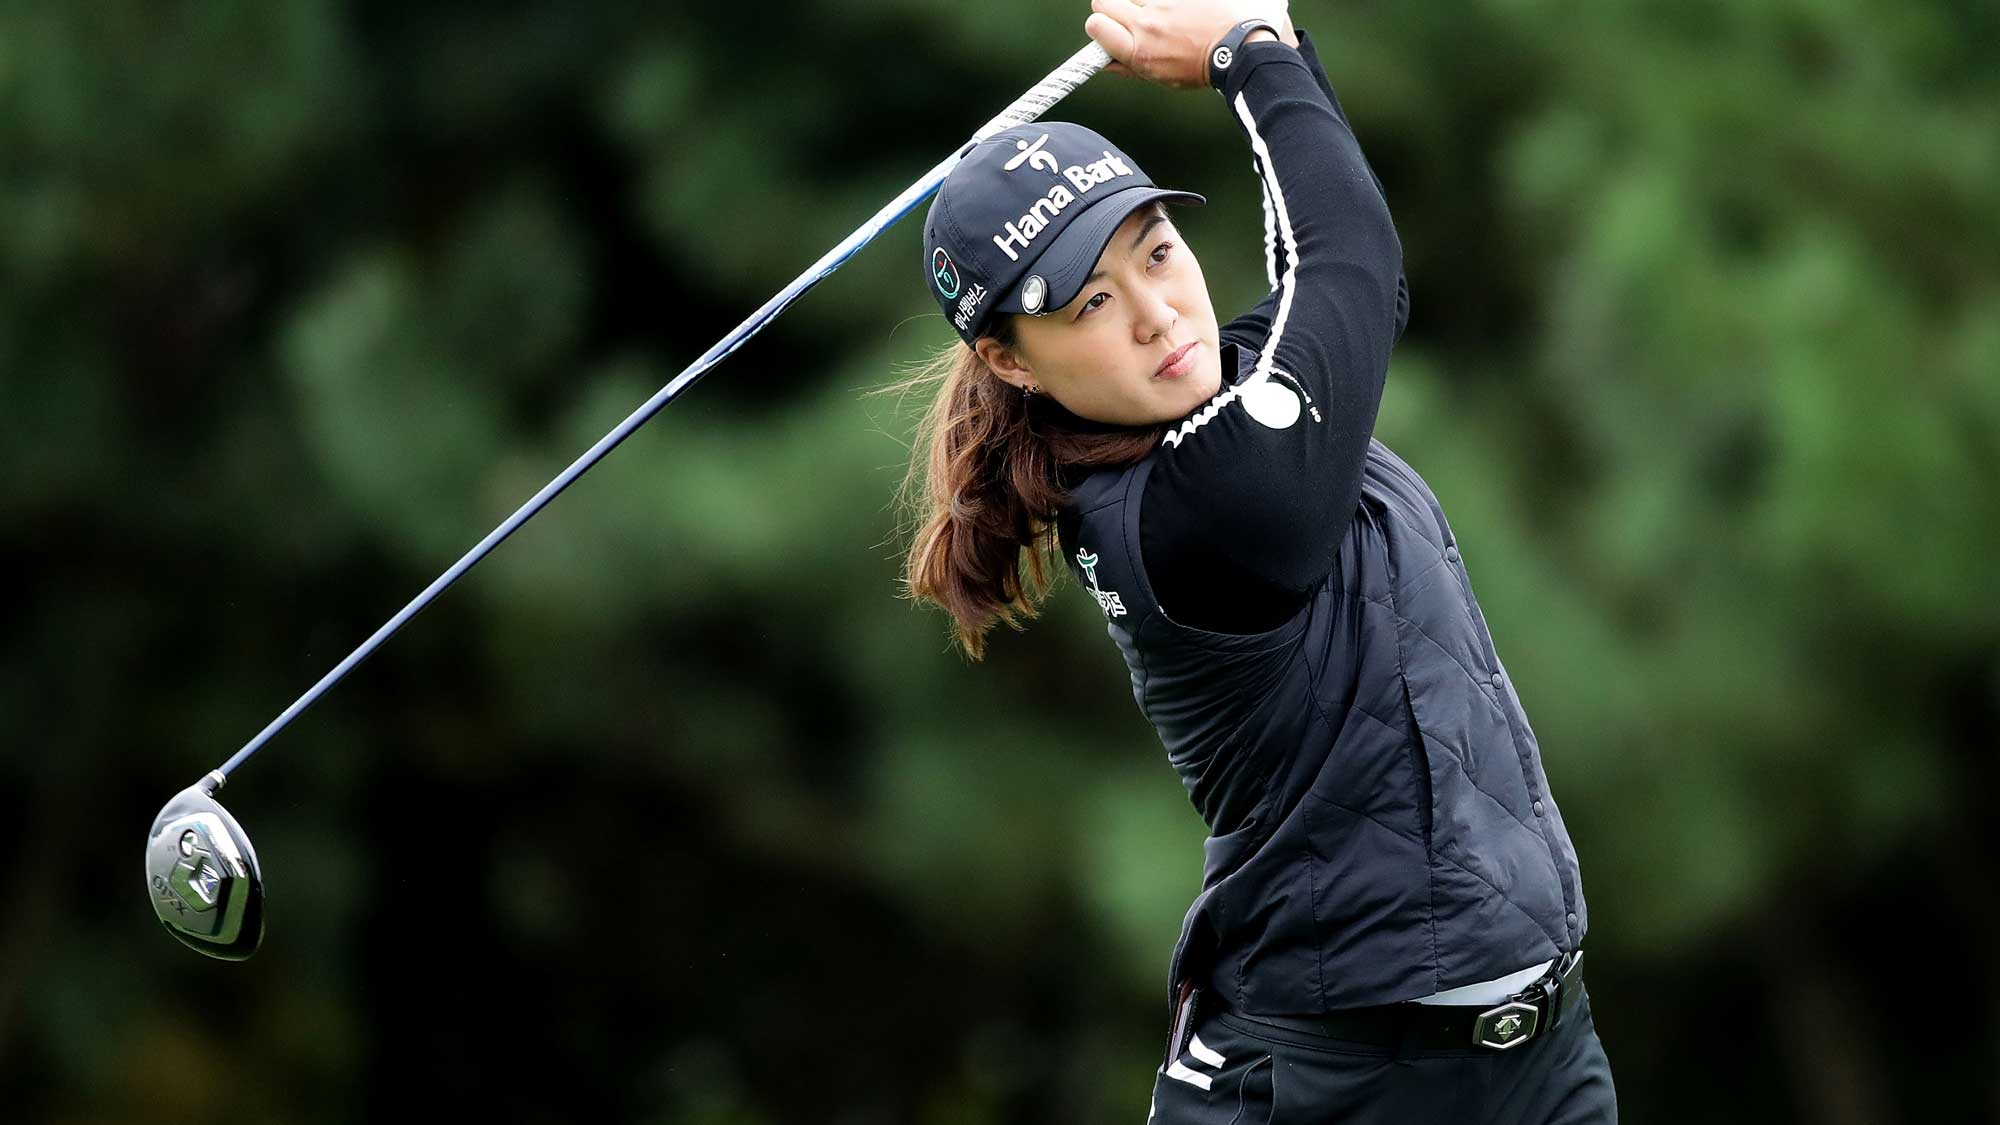 Minjee Lee of Australia plays a tee shot on the 2nd hole during the first round of the LPGA KEB Hana Bank Championship